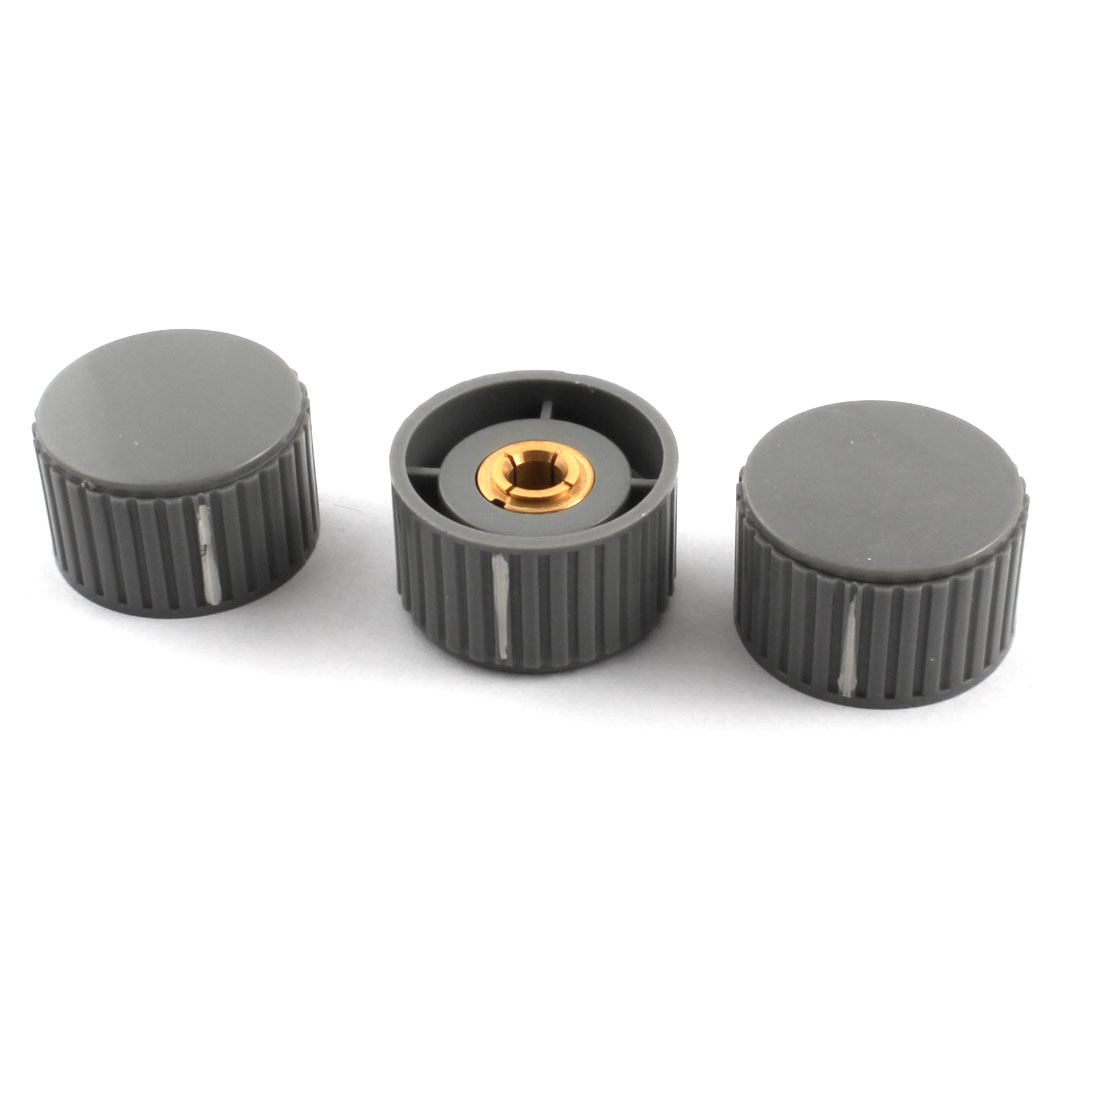 3 Pcs 32mm Nonslip Gray Plastic Volume Control Rotary Potentiometer Encoder Knob for 6mm Dia Shaft